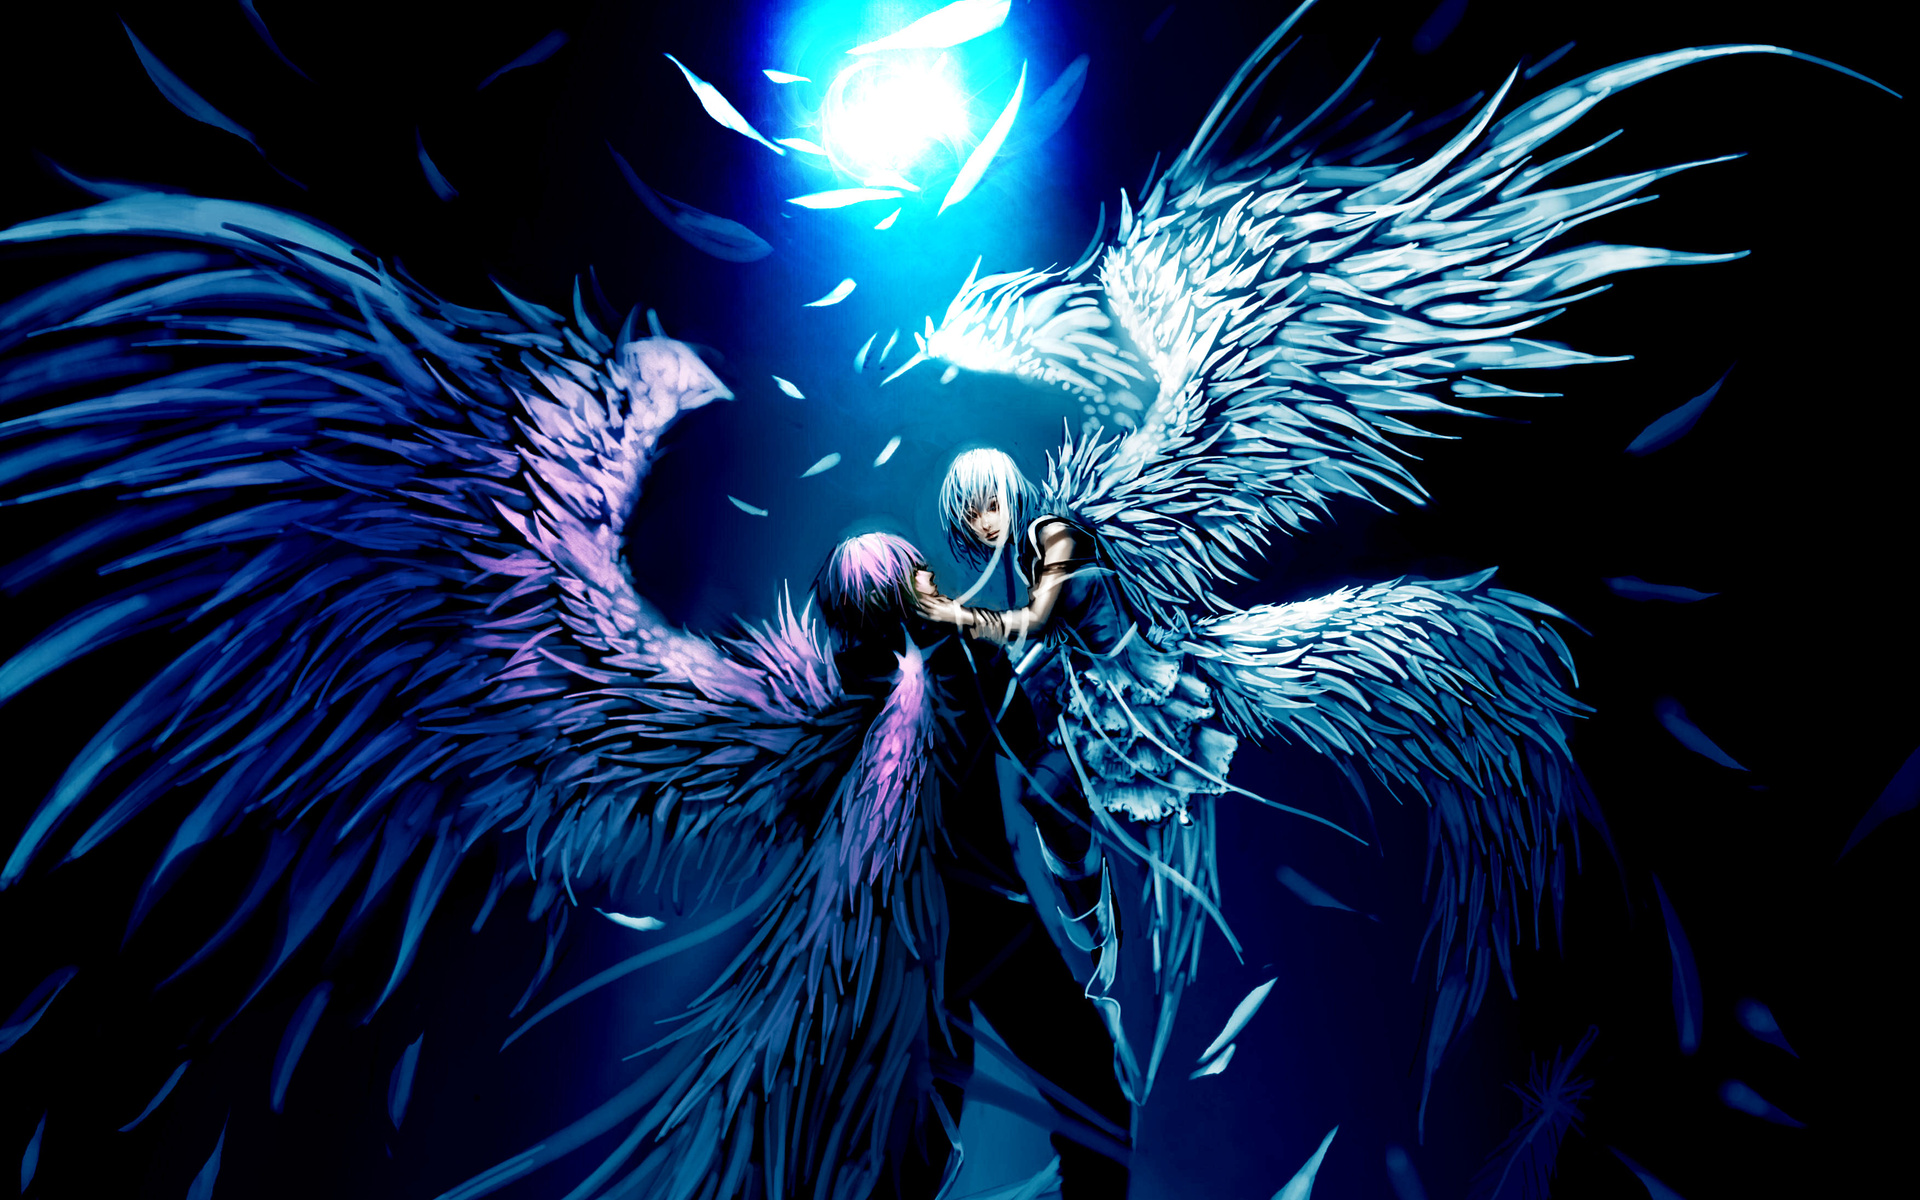 Angel Full Just Another High Wallpaper 1920x1200 Full HD Wallpapers 1920x1200